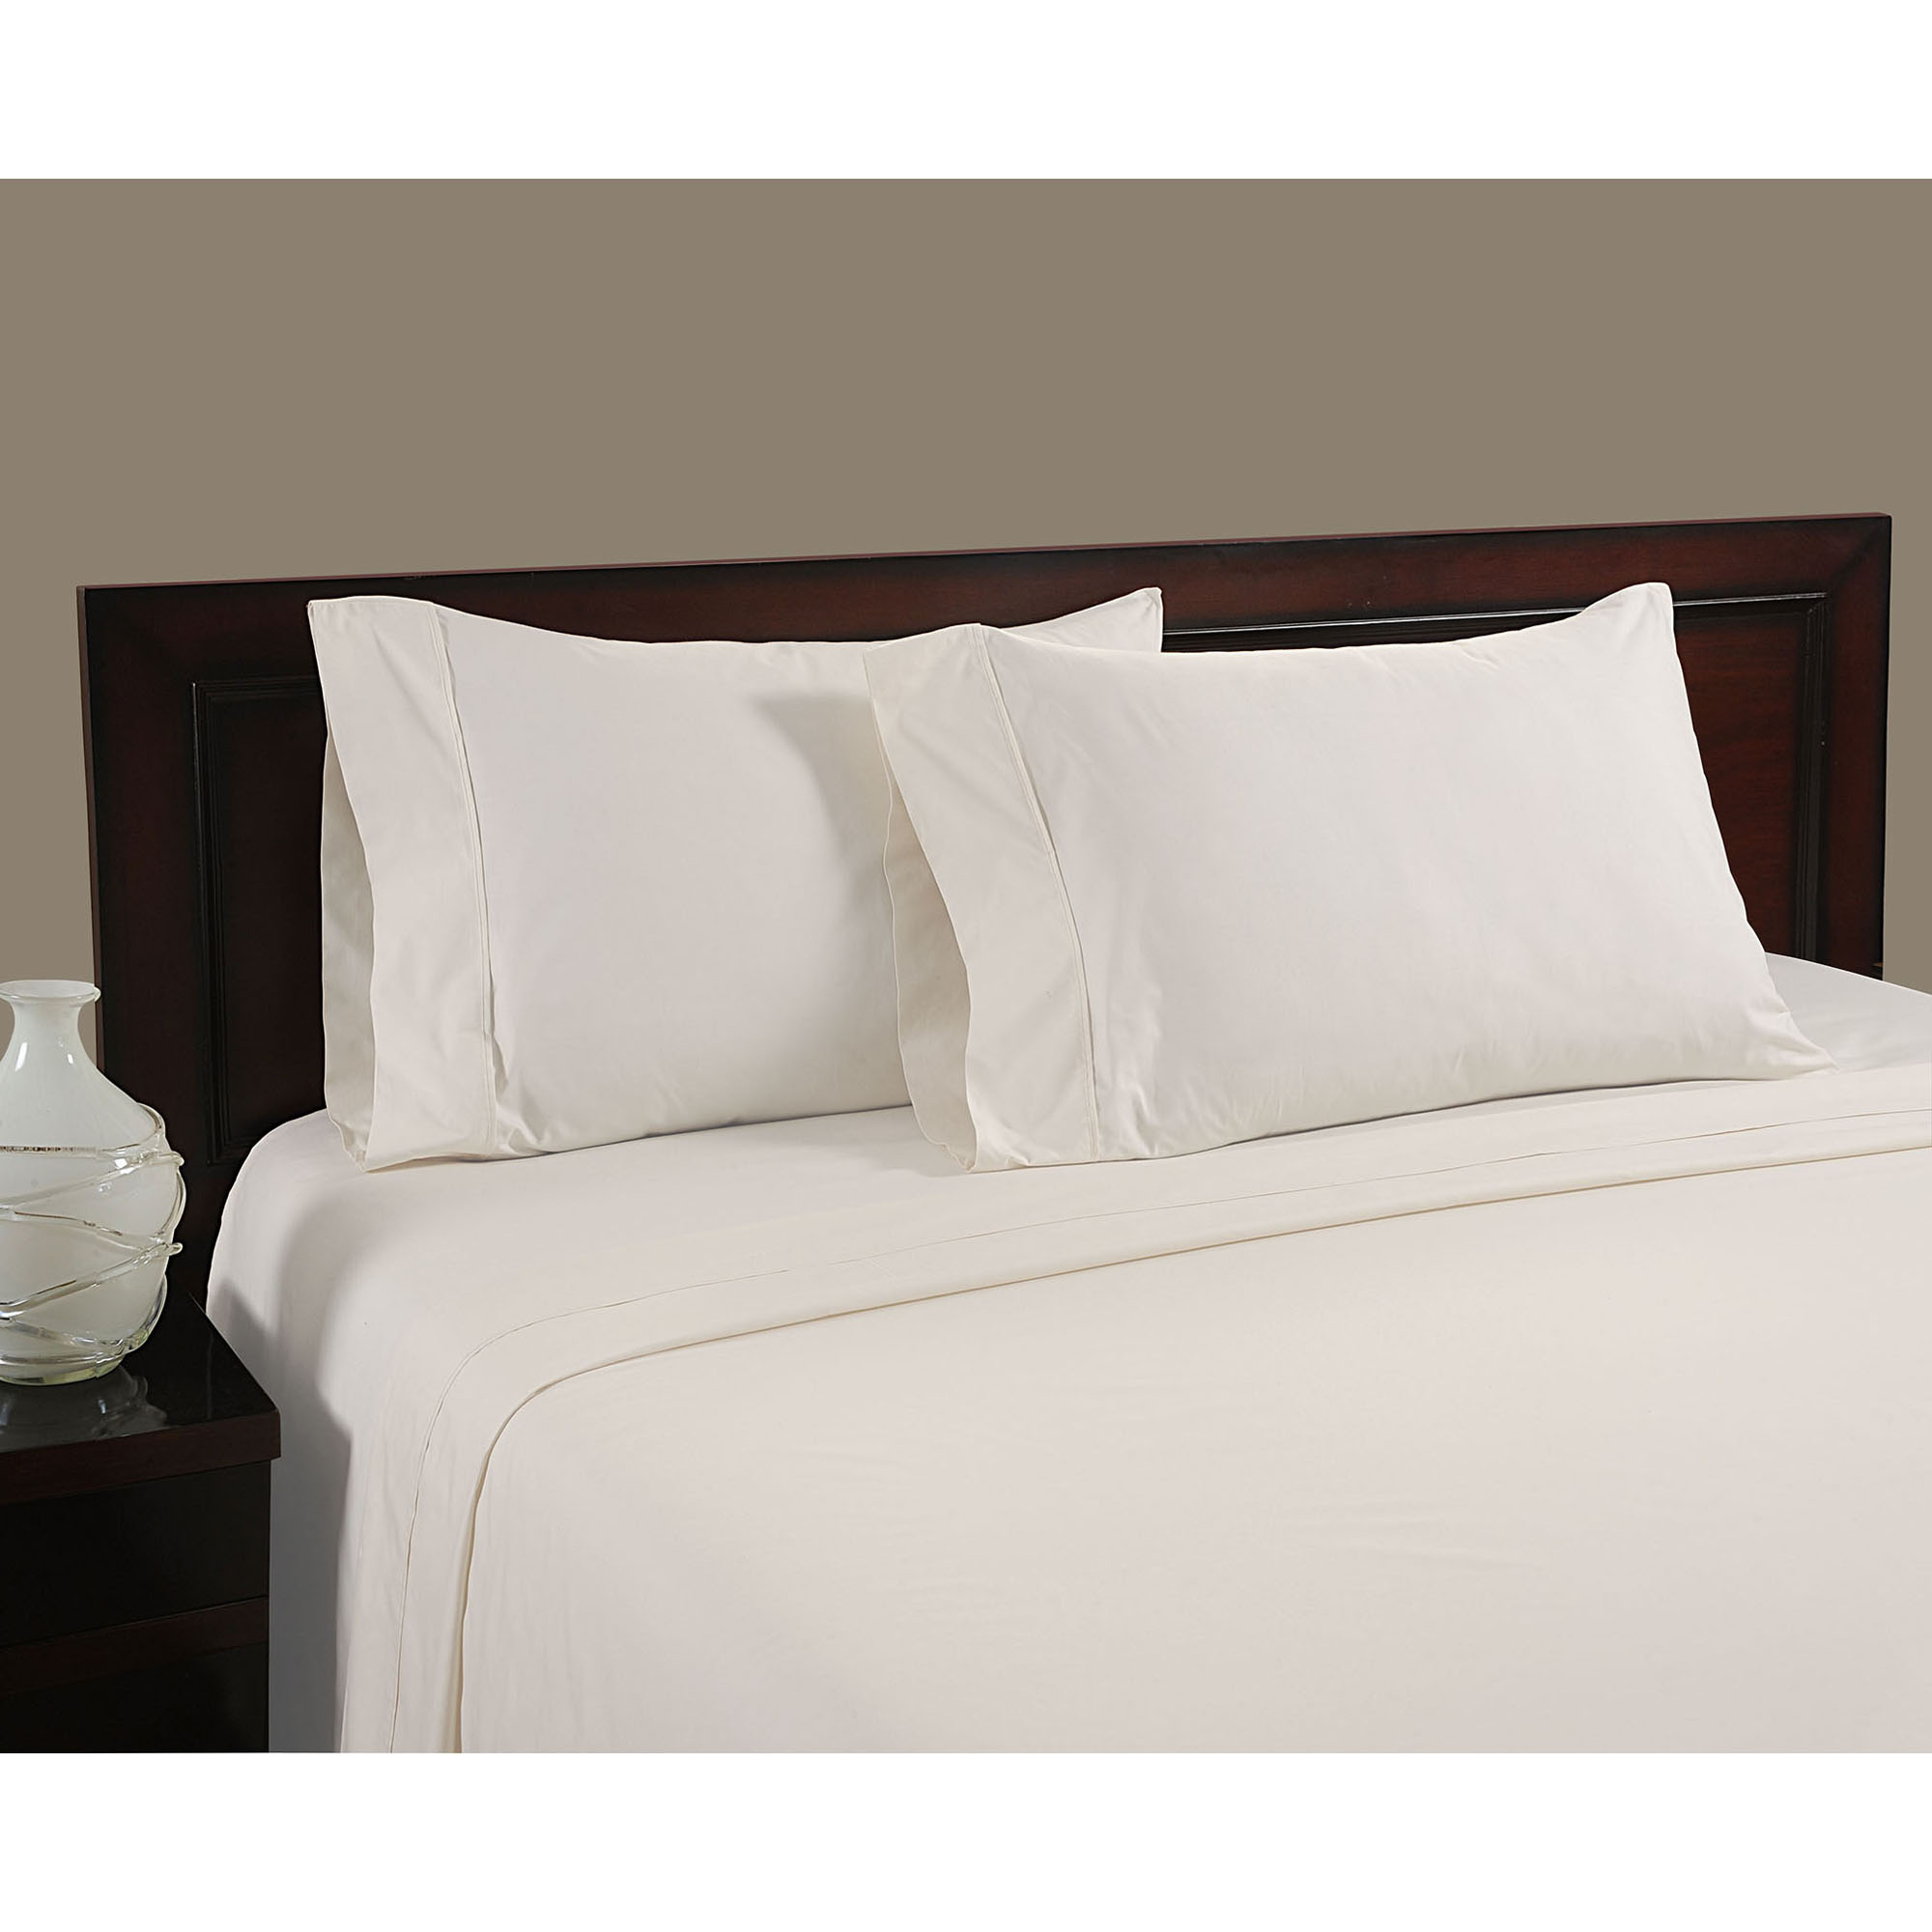 Egyptian Cotton Sheets | Cmn Home Sheets | Bed Sheets Egyptian Cotton